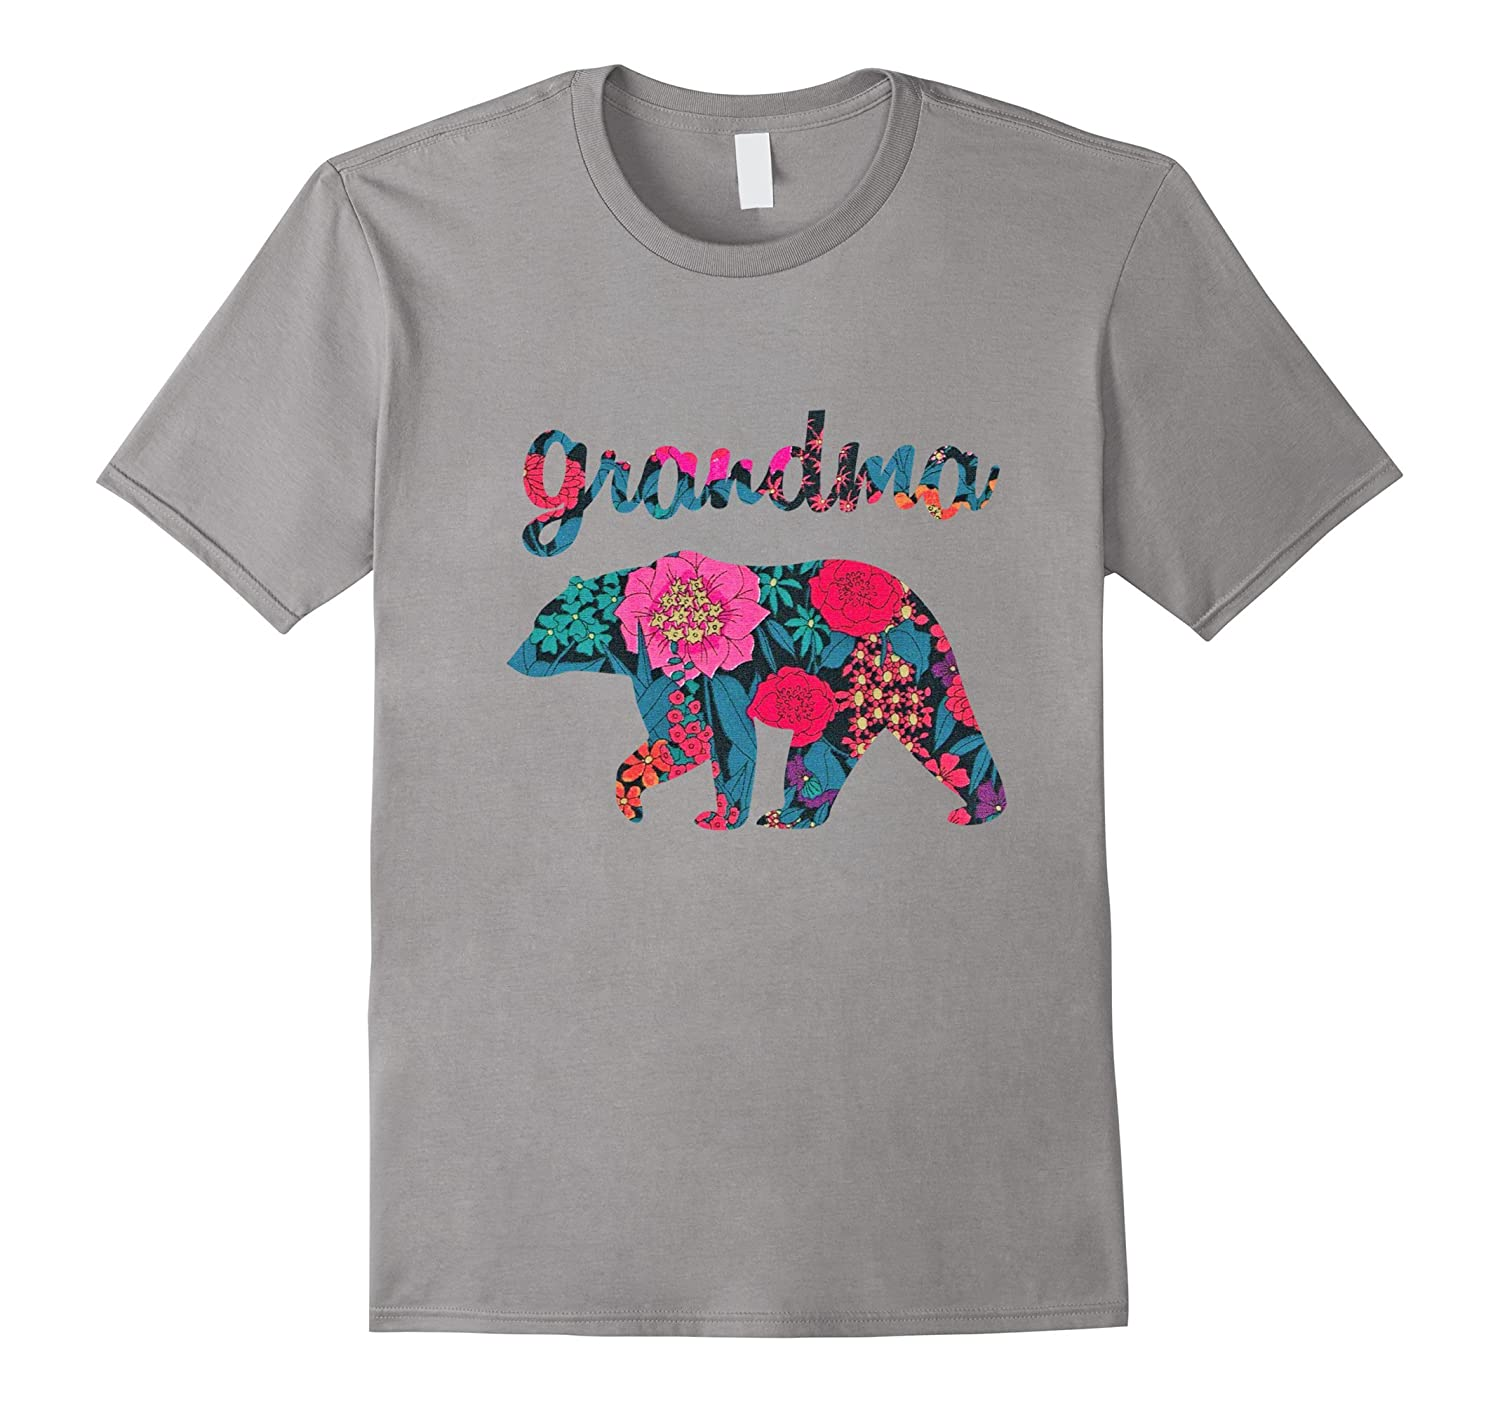 Happy Grandma Bear Floral T Shirt, Matching Family Bear Tee-4LVS